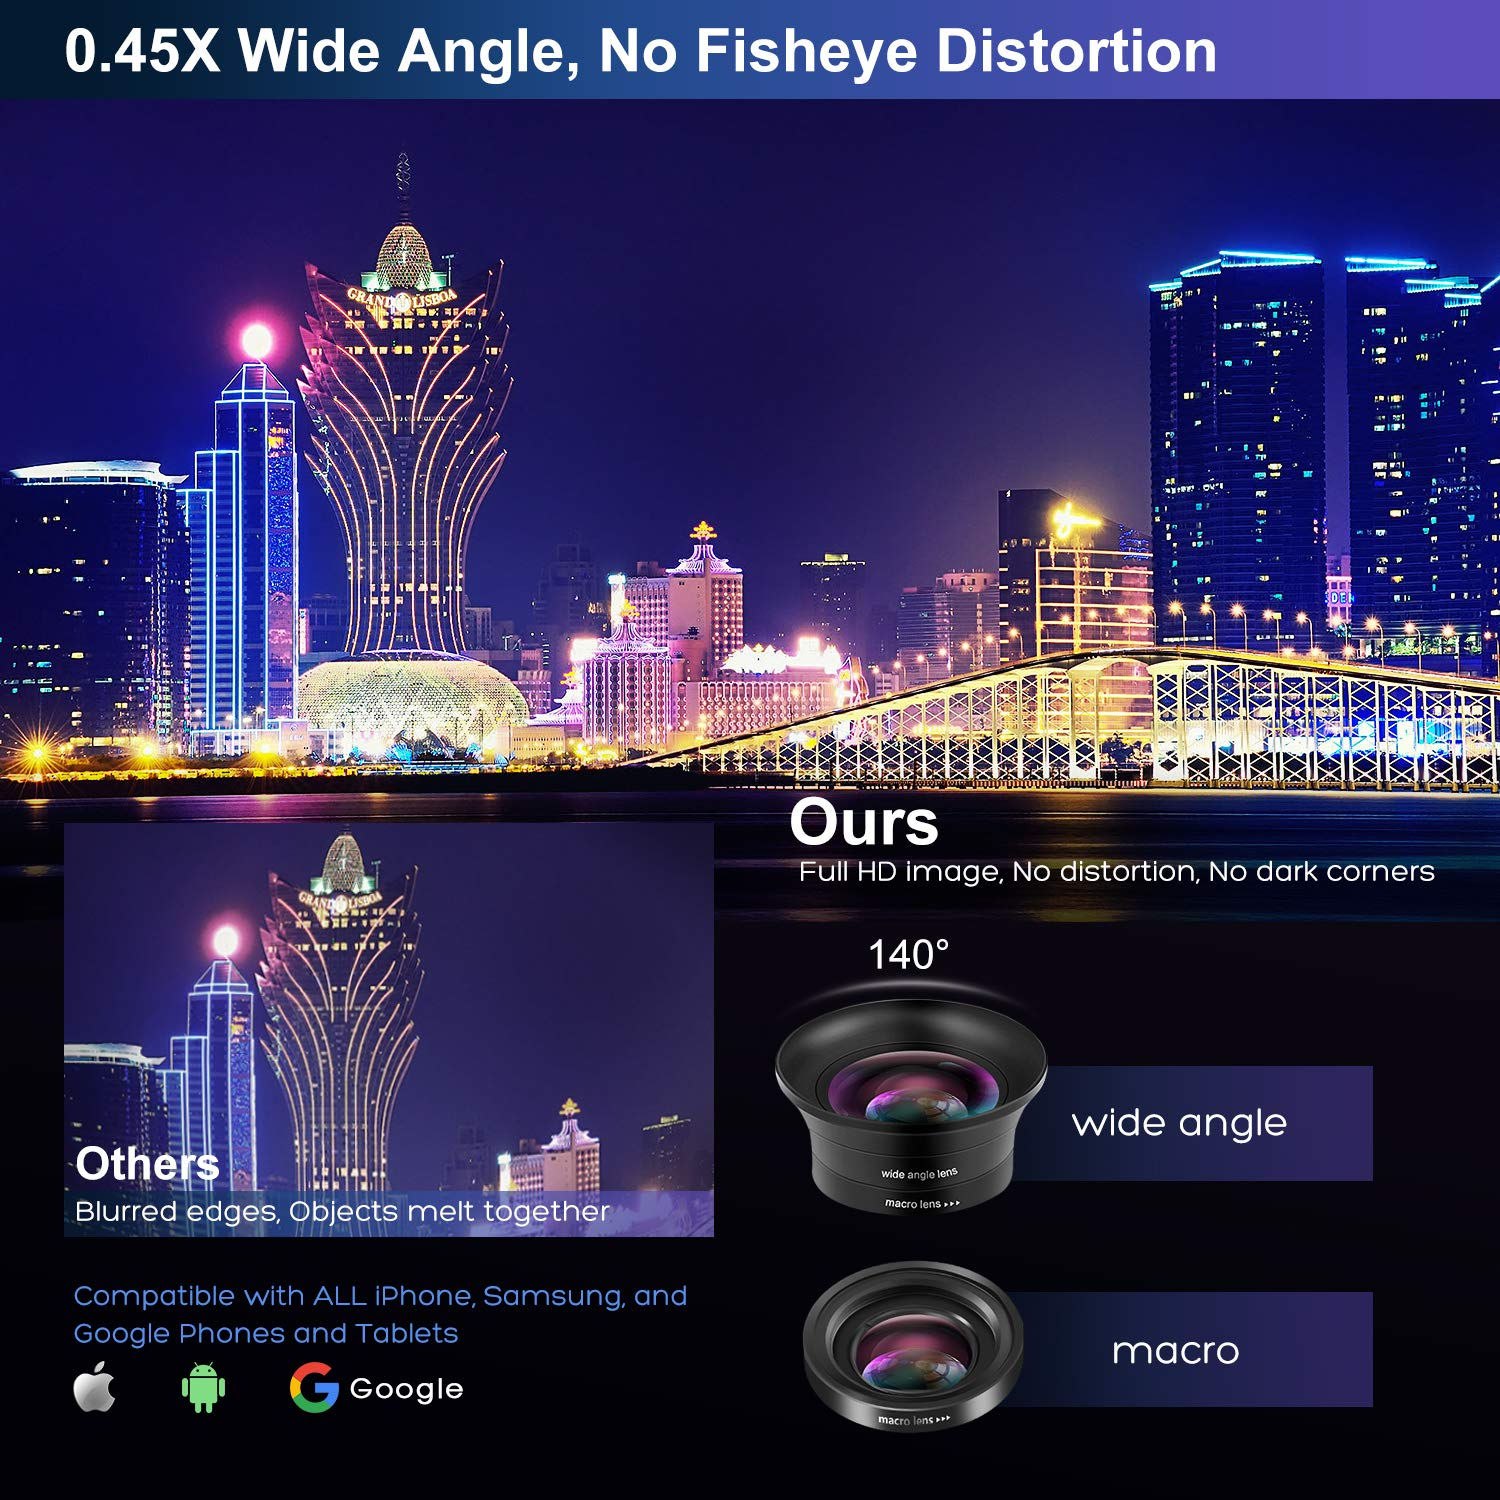 Cell Phone Camera Lens Kit – VIEWOW 4K HD 7 Optical Glasses 15X Macro 0.45X Wide Angle Phone Lens Kit with LED Light and Travel Case, Compatible with iPhone X/XS/8/7 Plus Samsung Pixel by VIEWOW (Image #5)